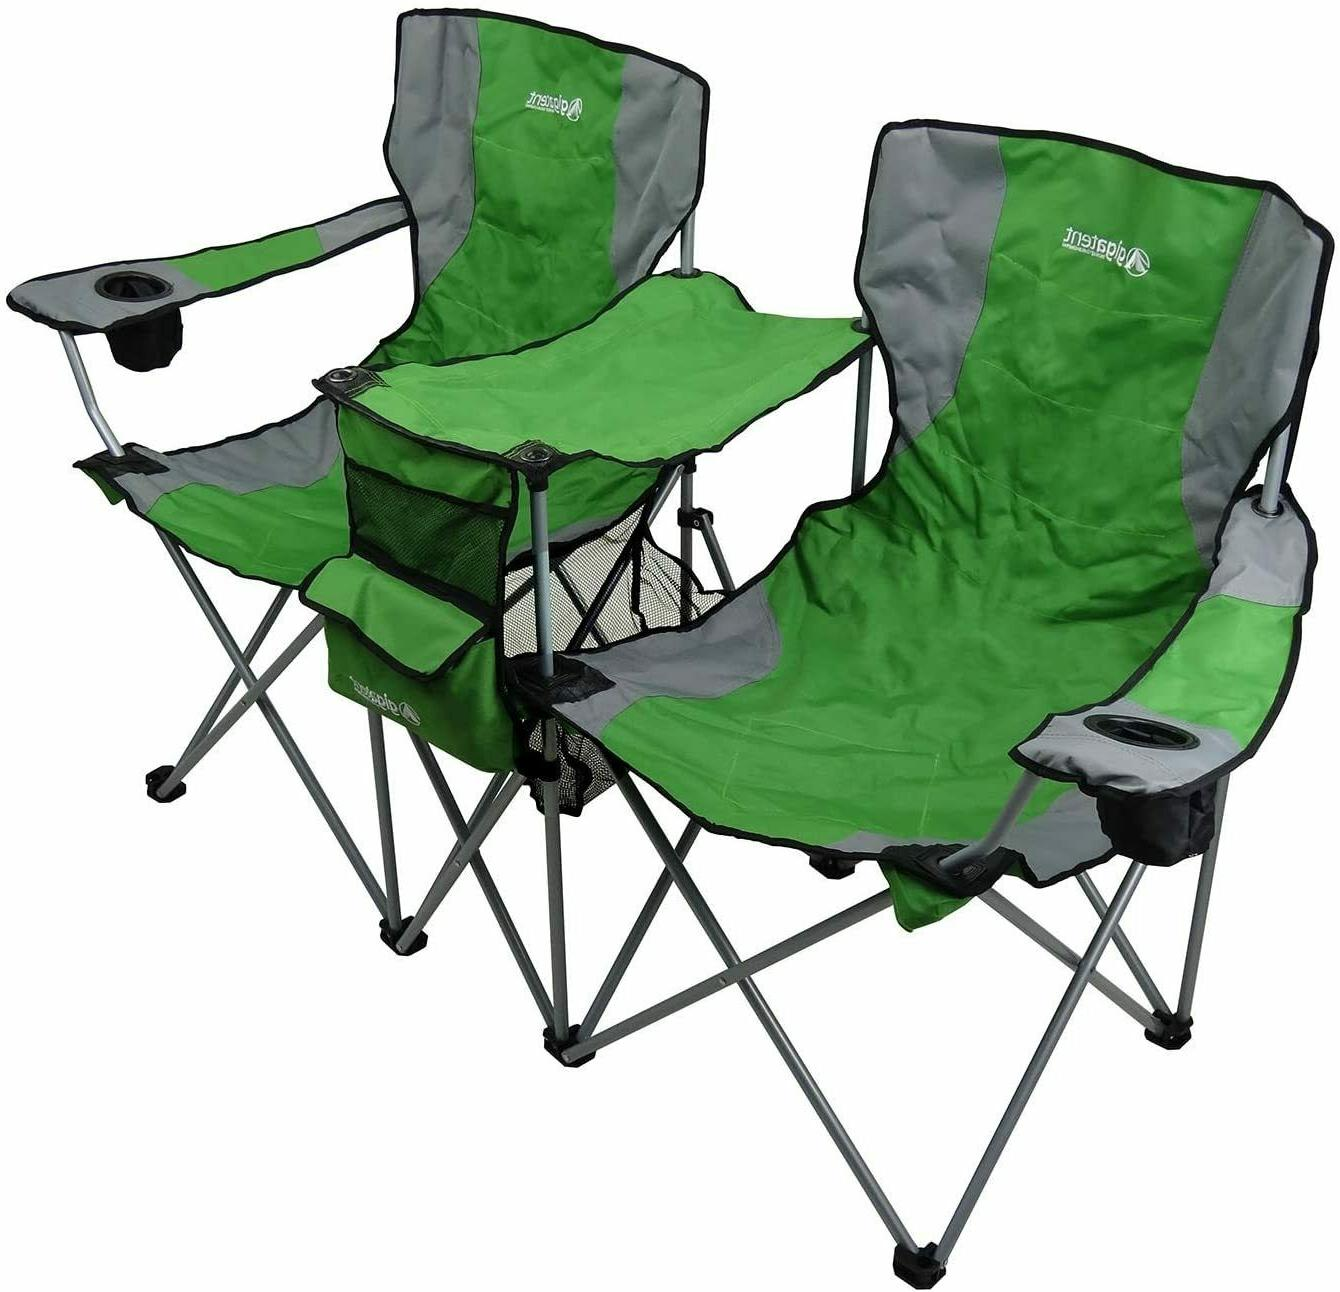 Camping Heavy Duty Green Cup Holder Beach Sports